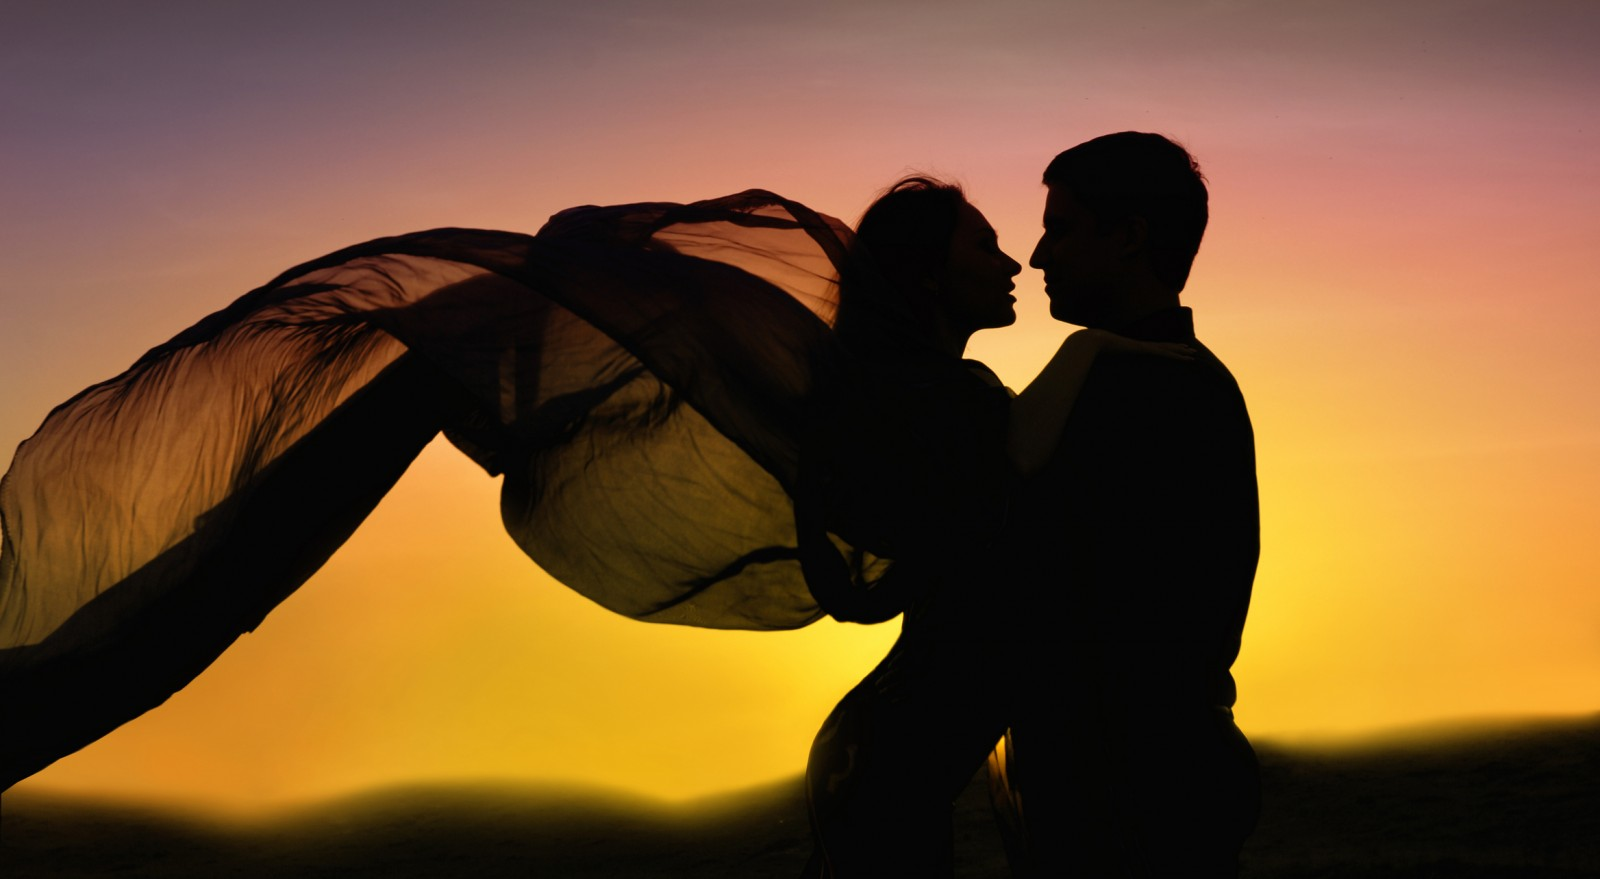 romantic silhouette wallpapers - photo #25